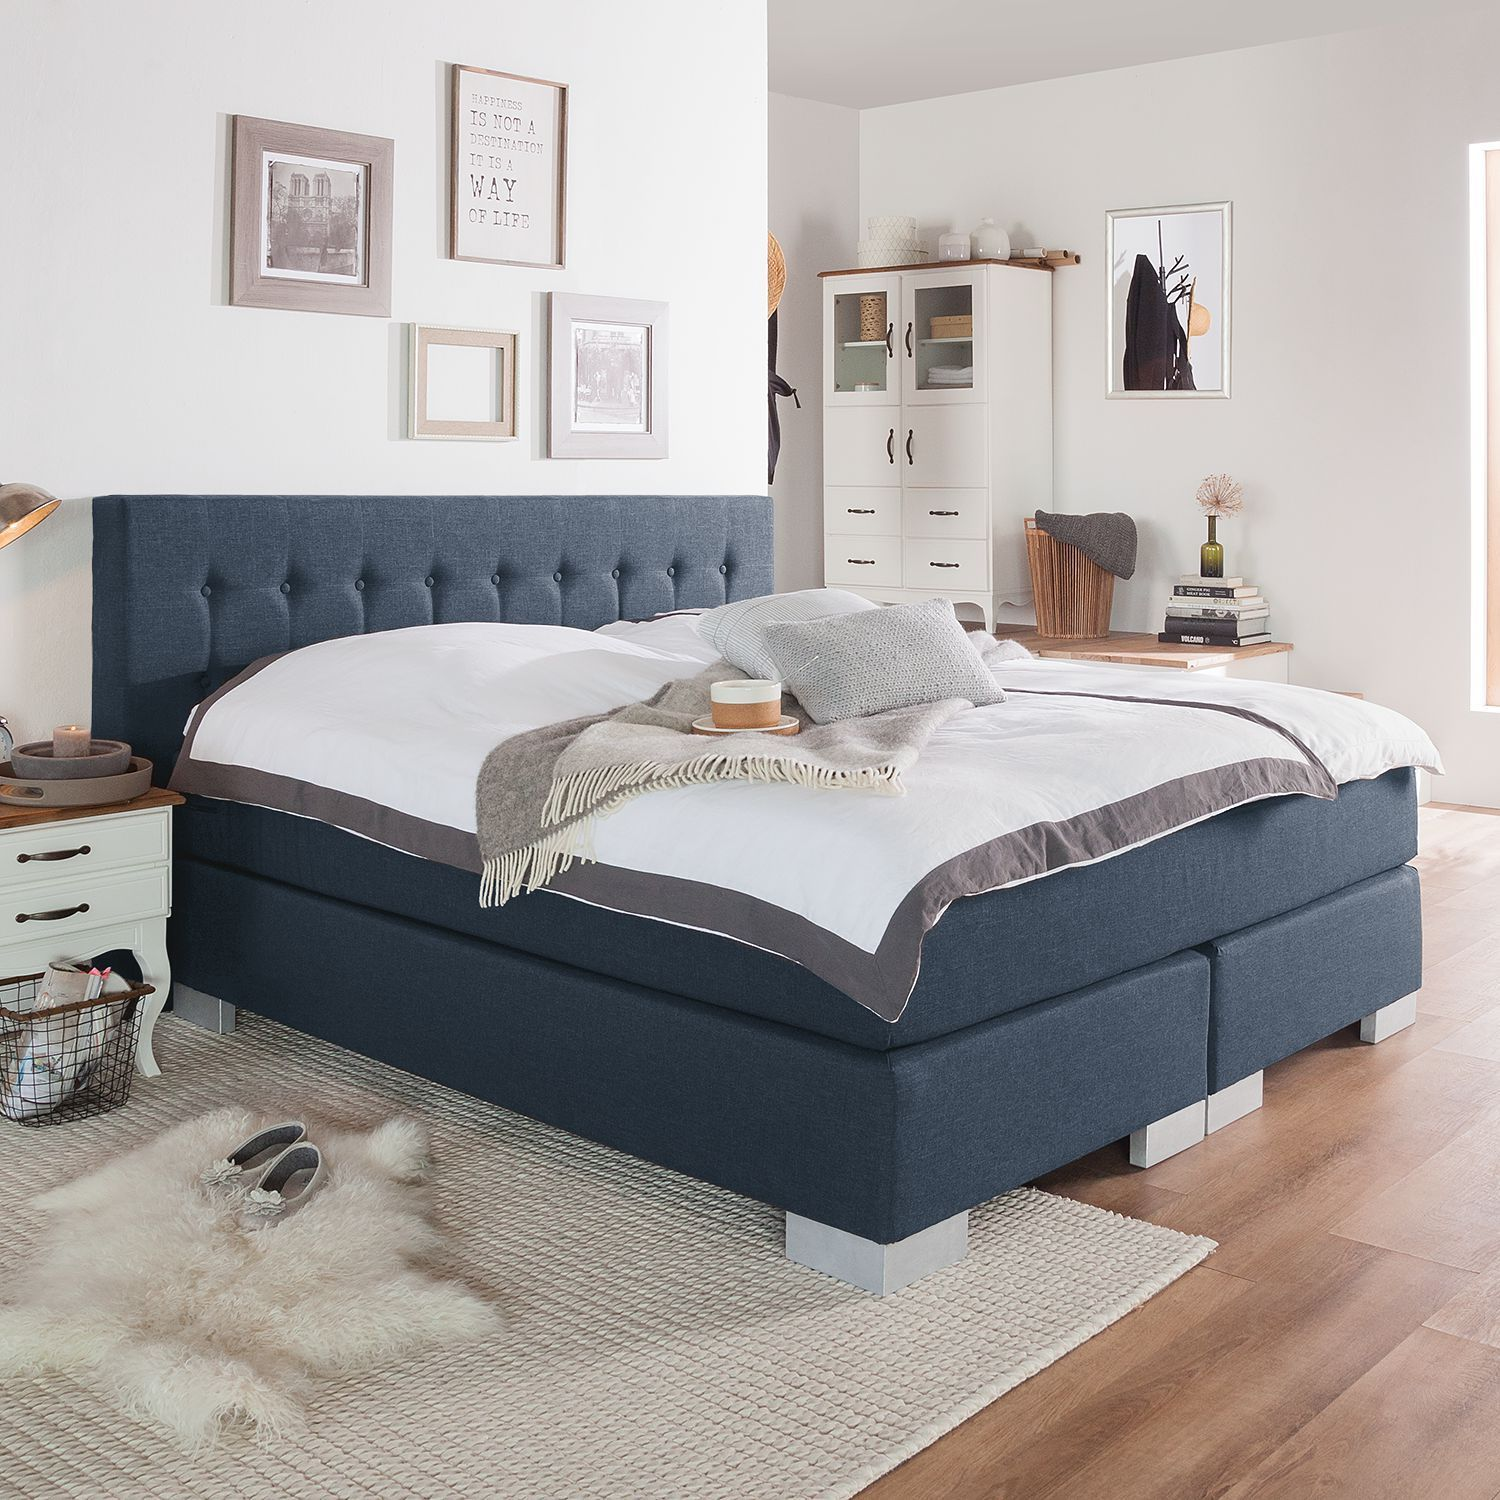 Fredriks Box Spring Bed Loimaa 160x200 Cm Web Fabric Denim Blue With Topper In 2020 Box Spring Bed Beautiful Bedroom Decor Bed Springs